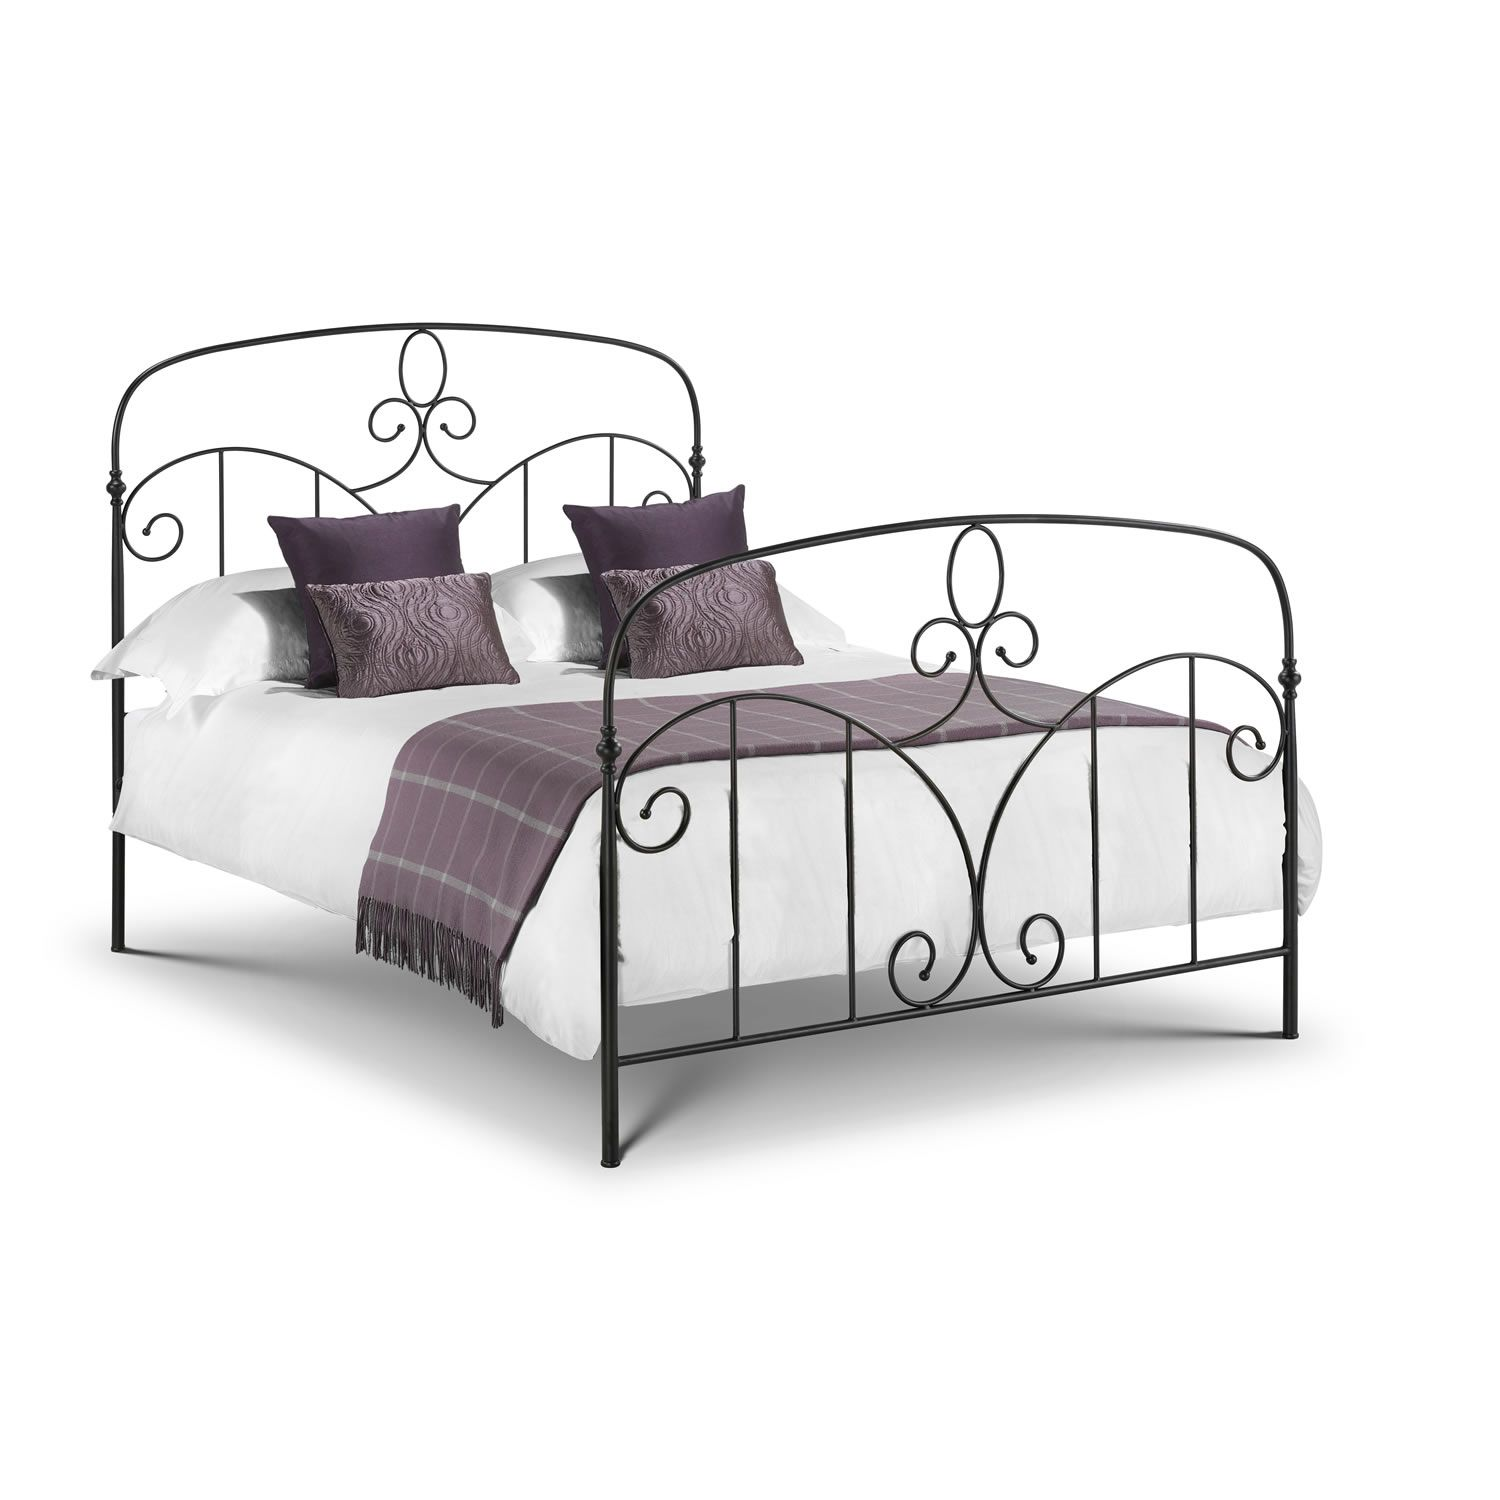 Julian Bowen Corsica Bed Frame Up To 60 Off Rrp Next Day  # Bowen Muebles A Medida